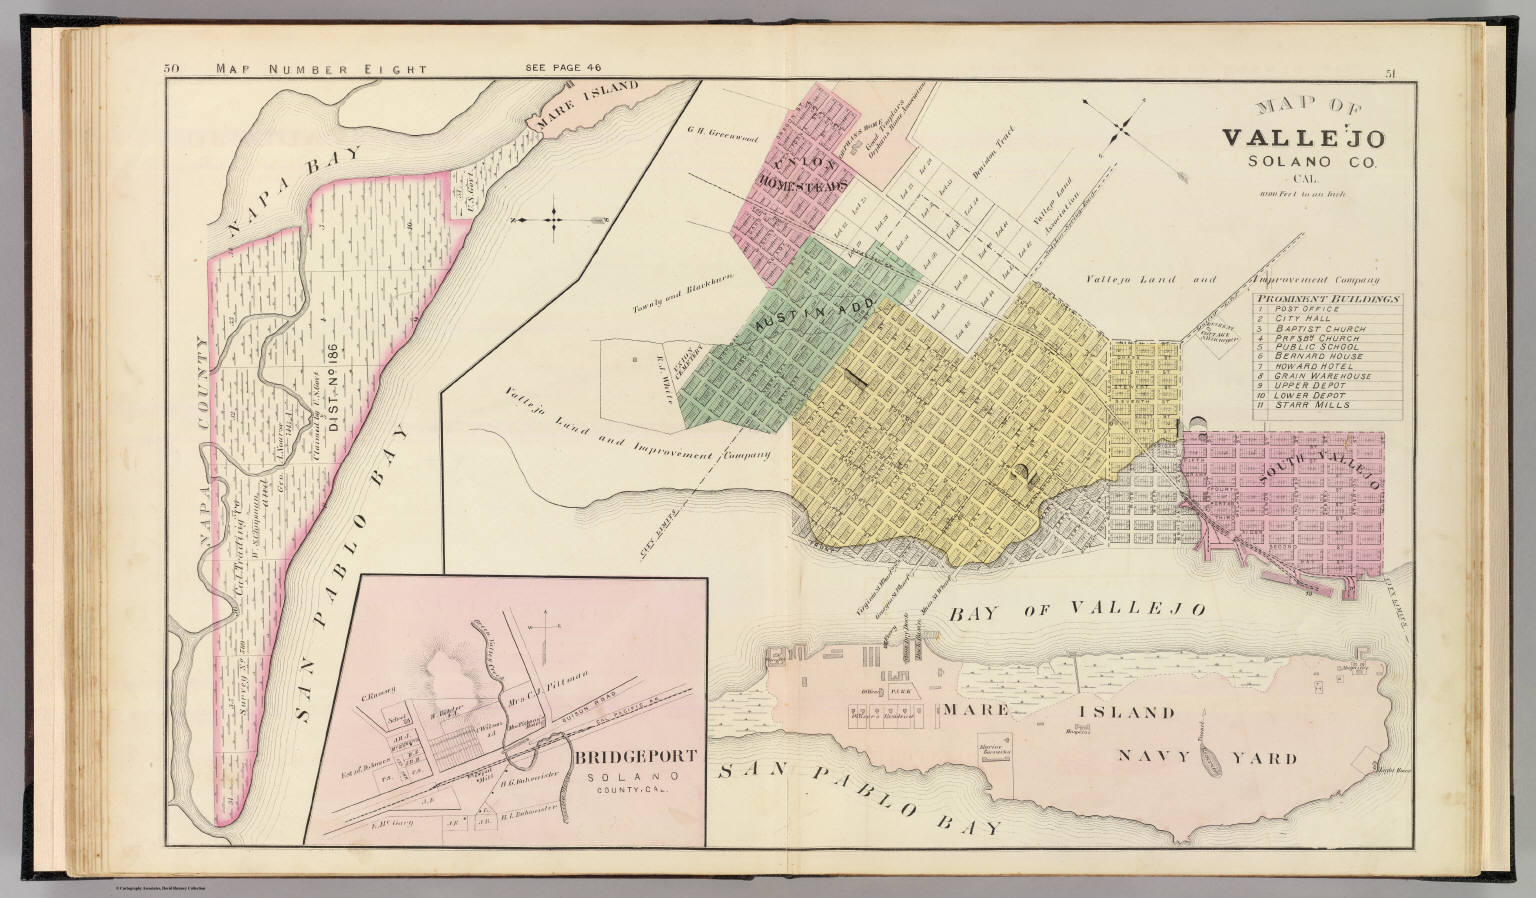 Vallejo Solano Co 8 David Rumsey Historical Map Collection